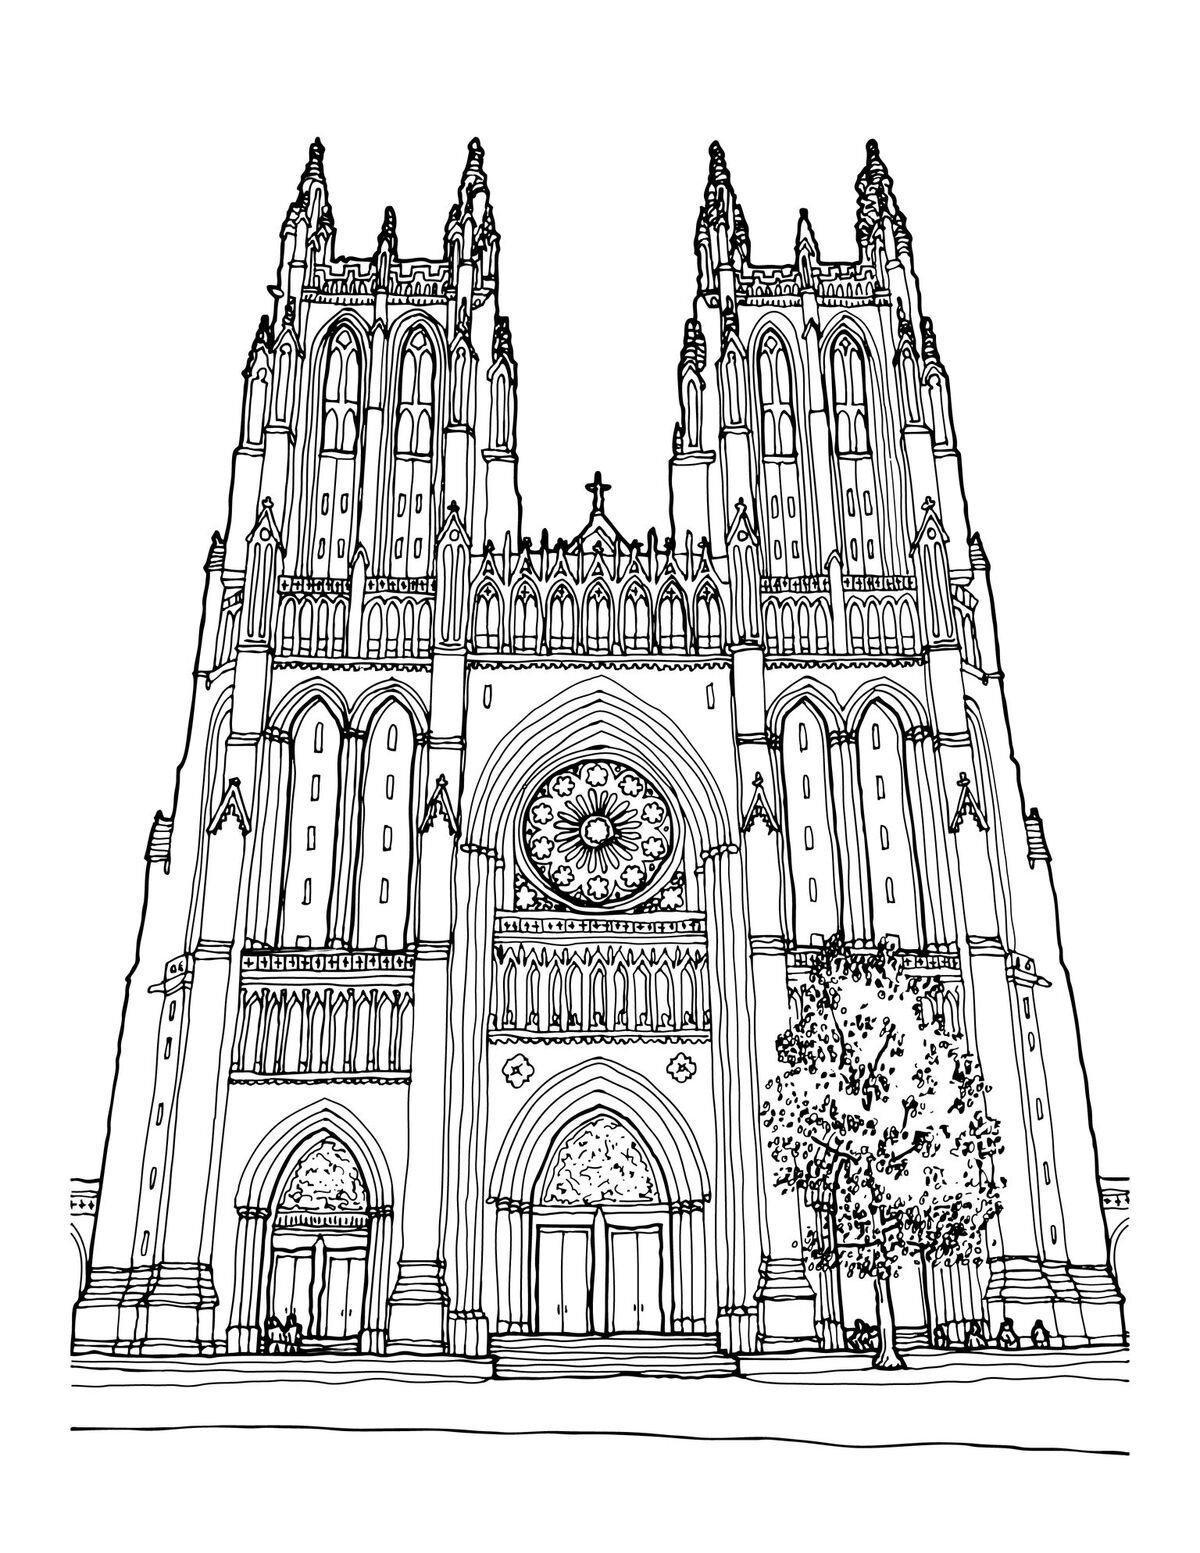 An Architectural Coloring Book for Washington, D.C. ‹ Architects and ...